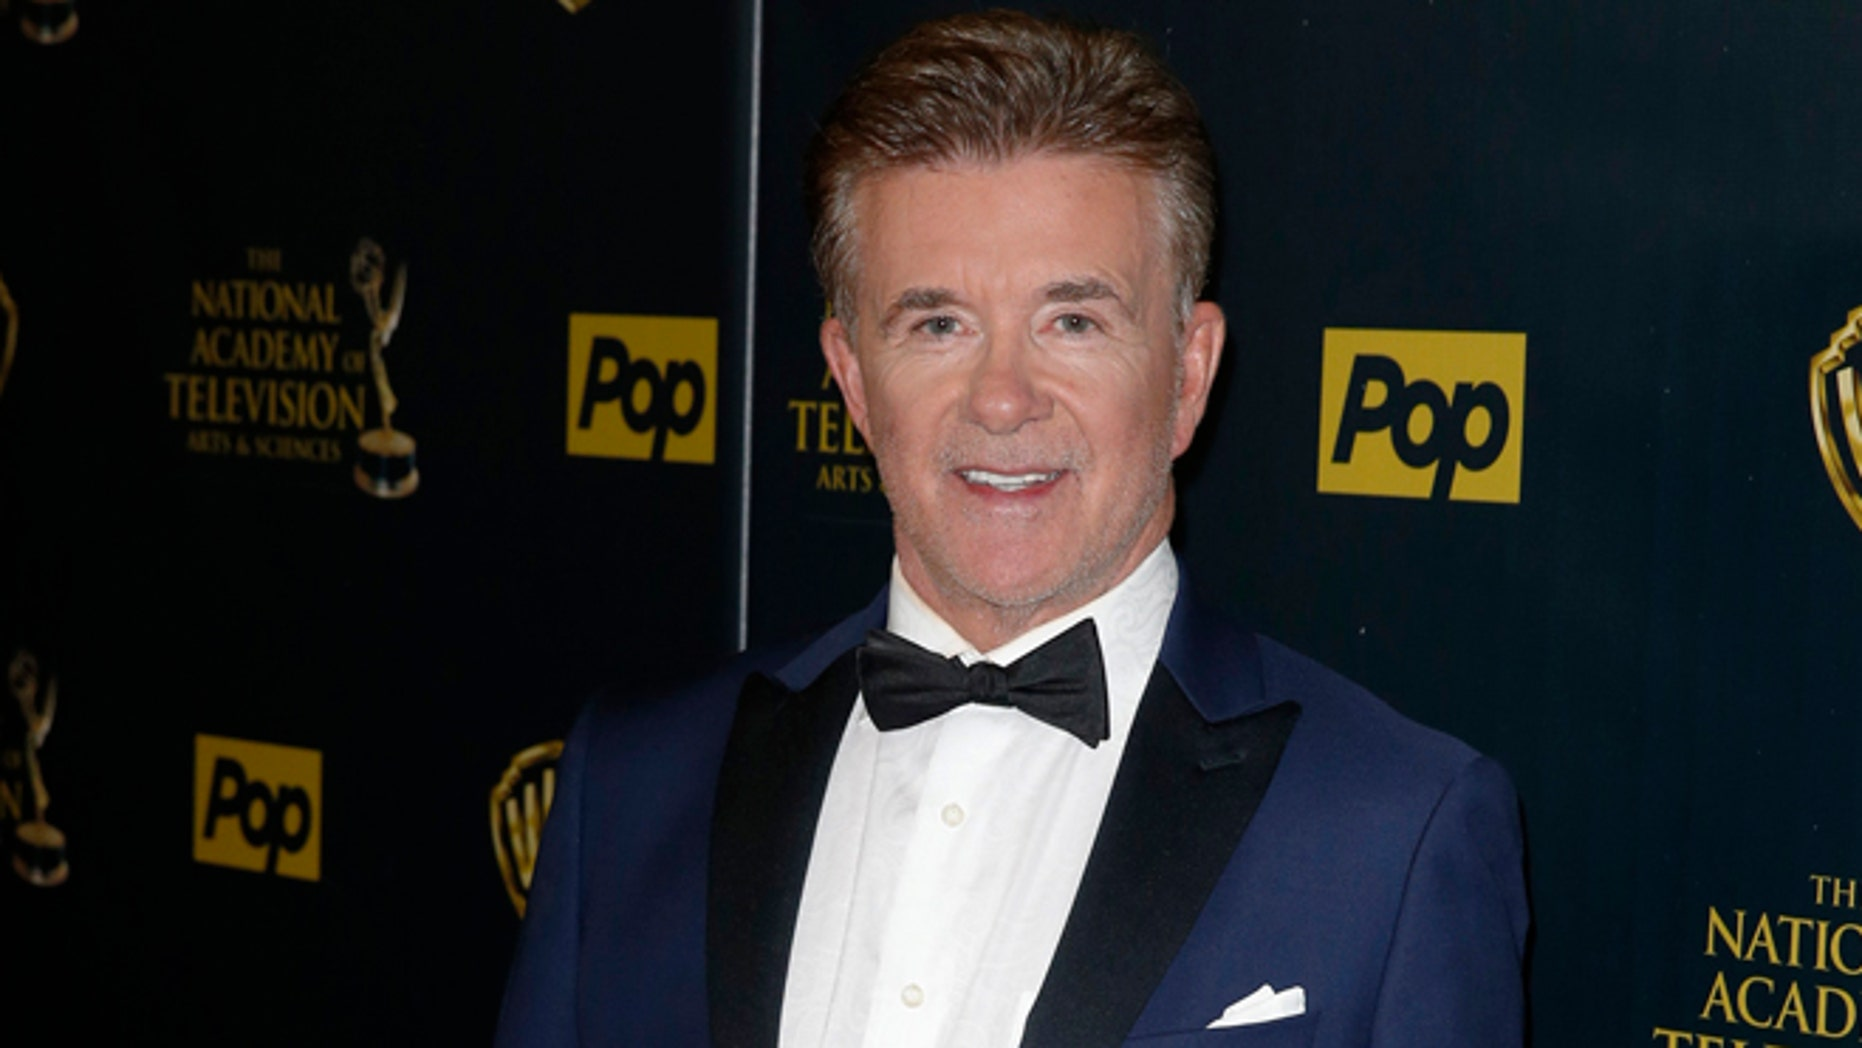 Alan Thicke was lovingly remembered at an NHL Gala.